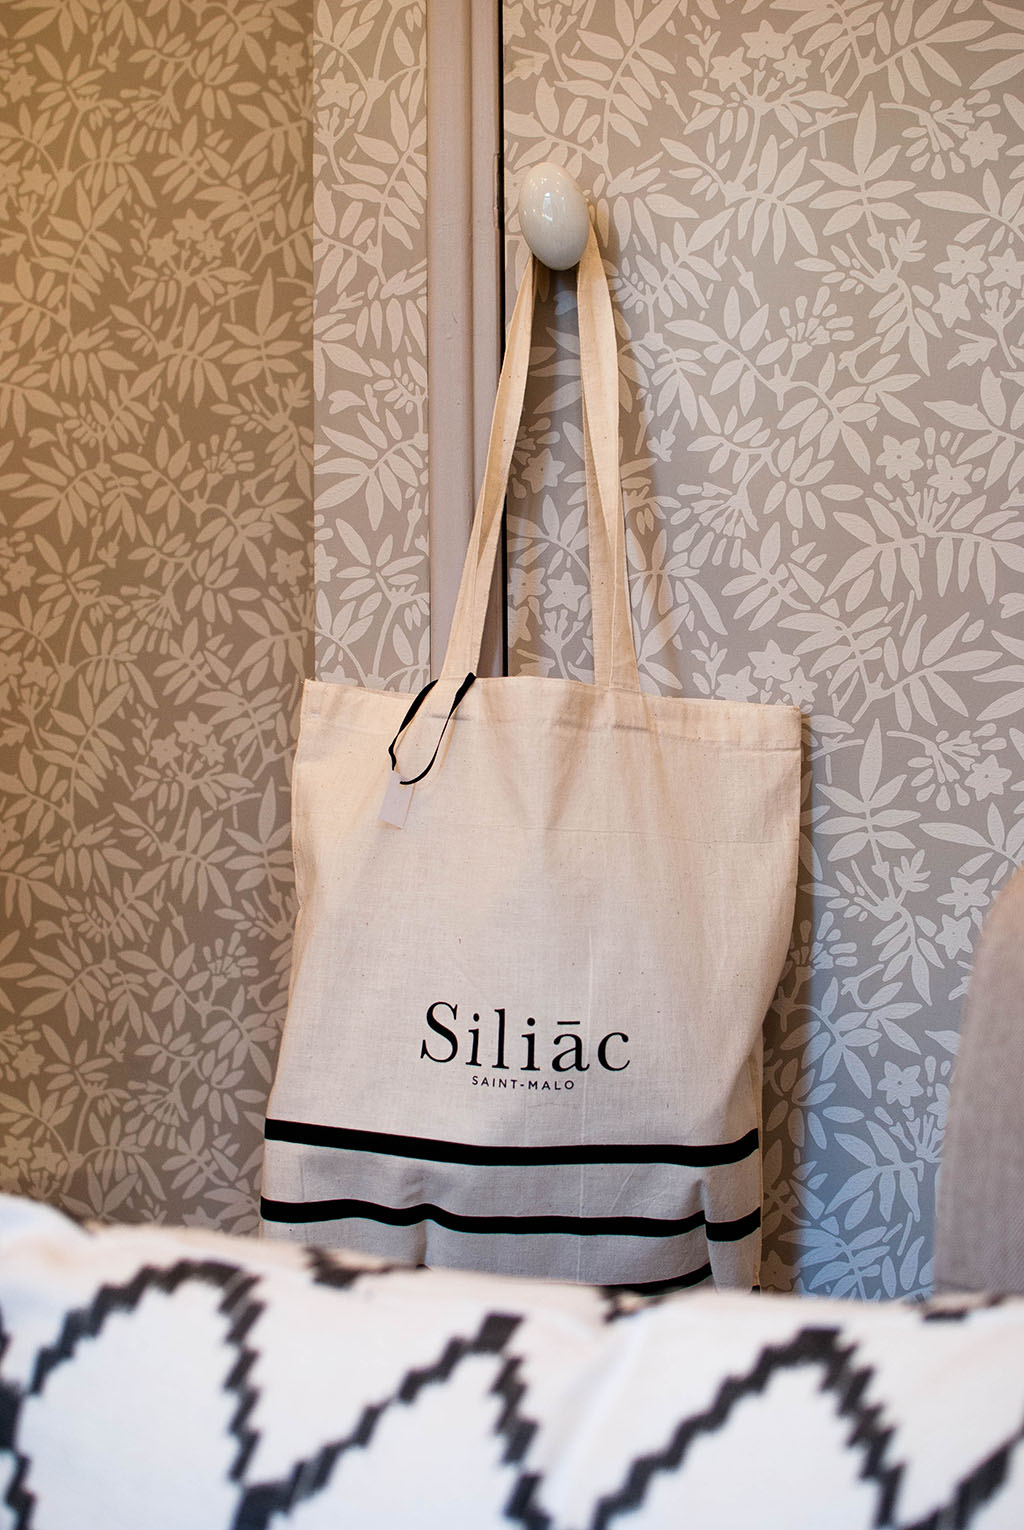 siliāc saint-malo bijoux made in france le petit monde d'elodie